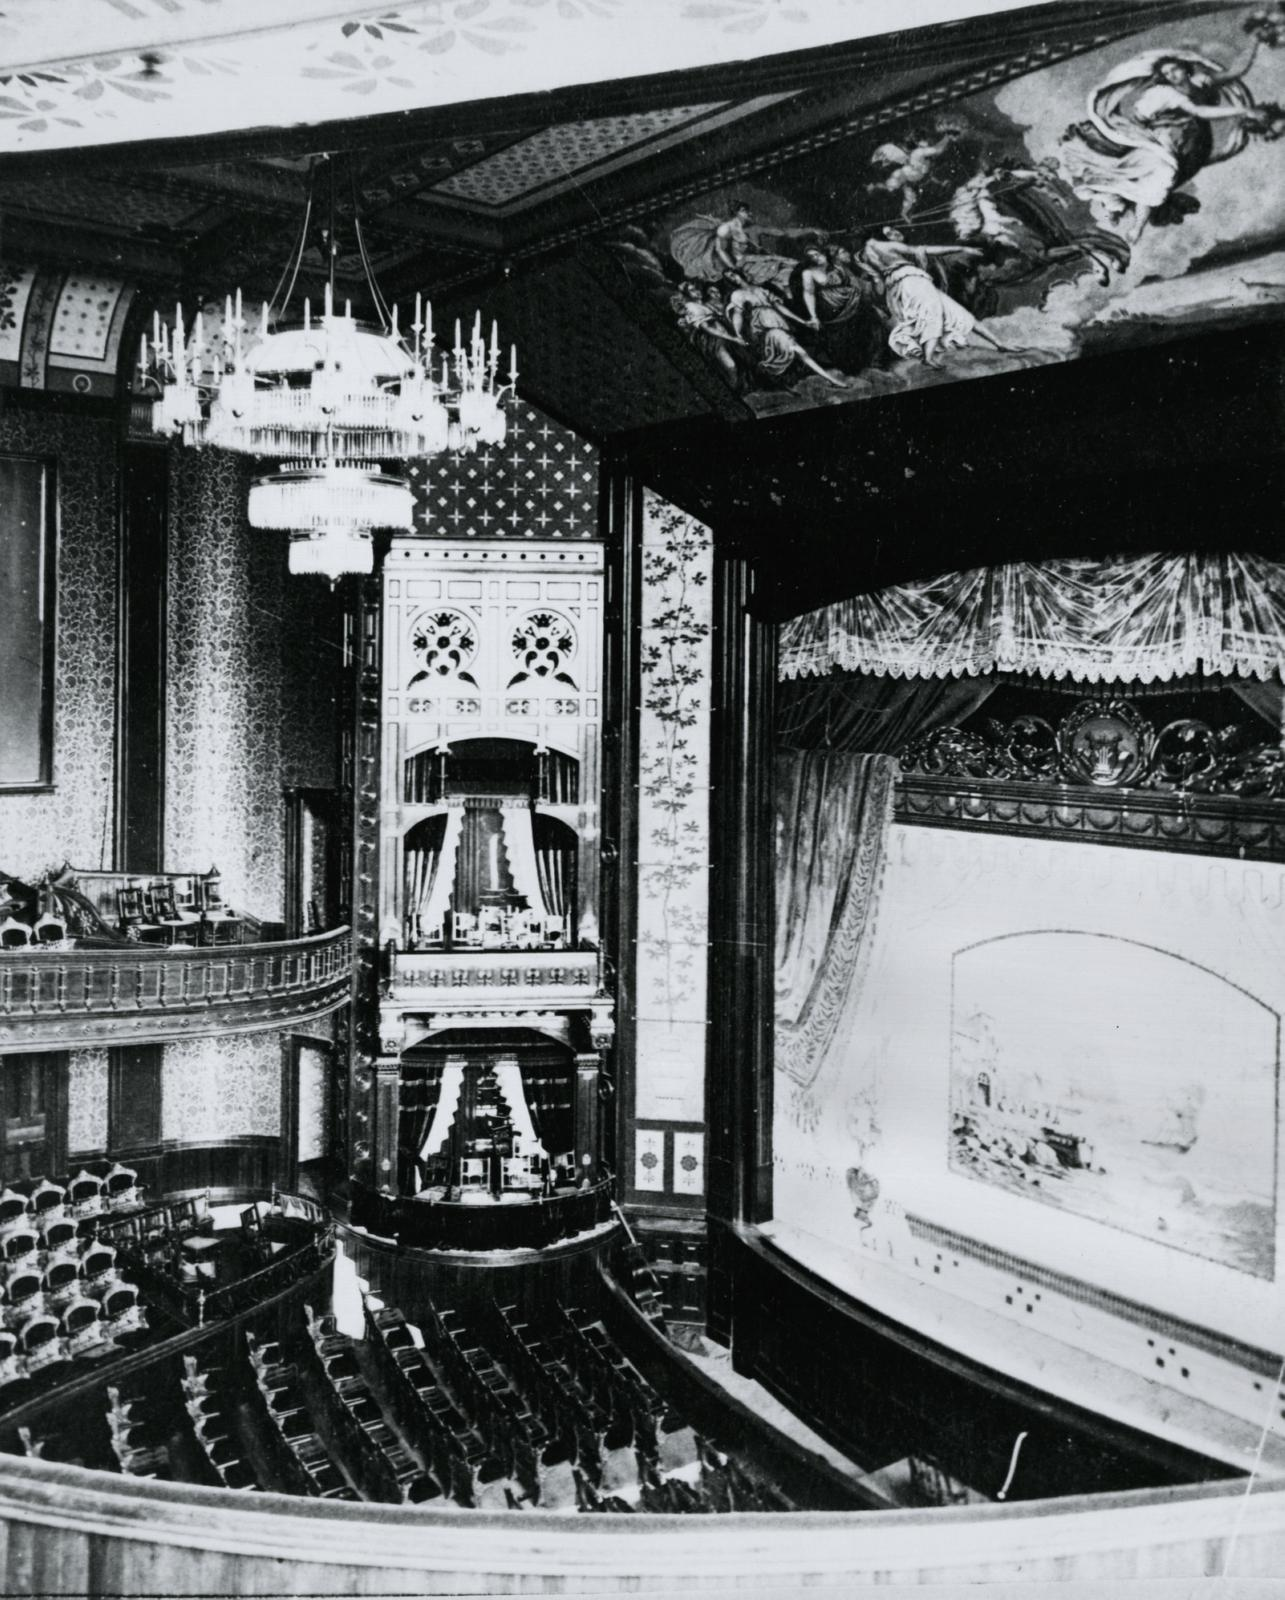 Academy of Music, Kalamazoo, Michigan, 1880s?